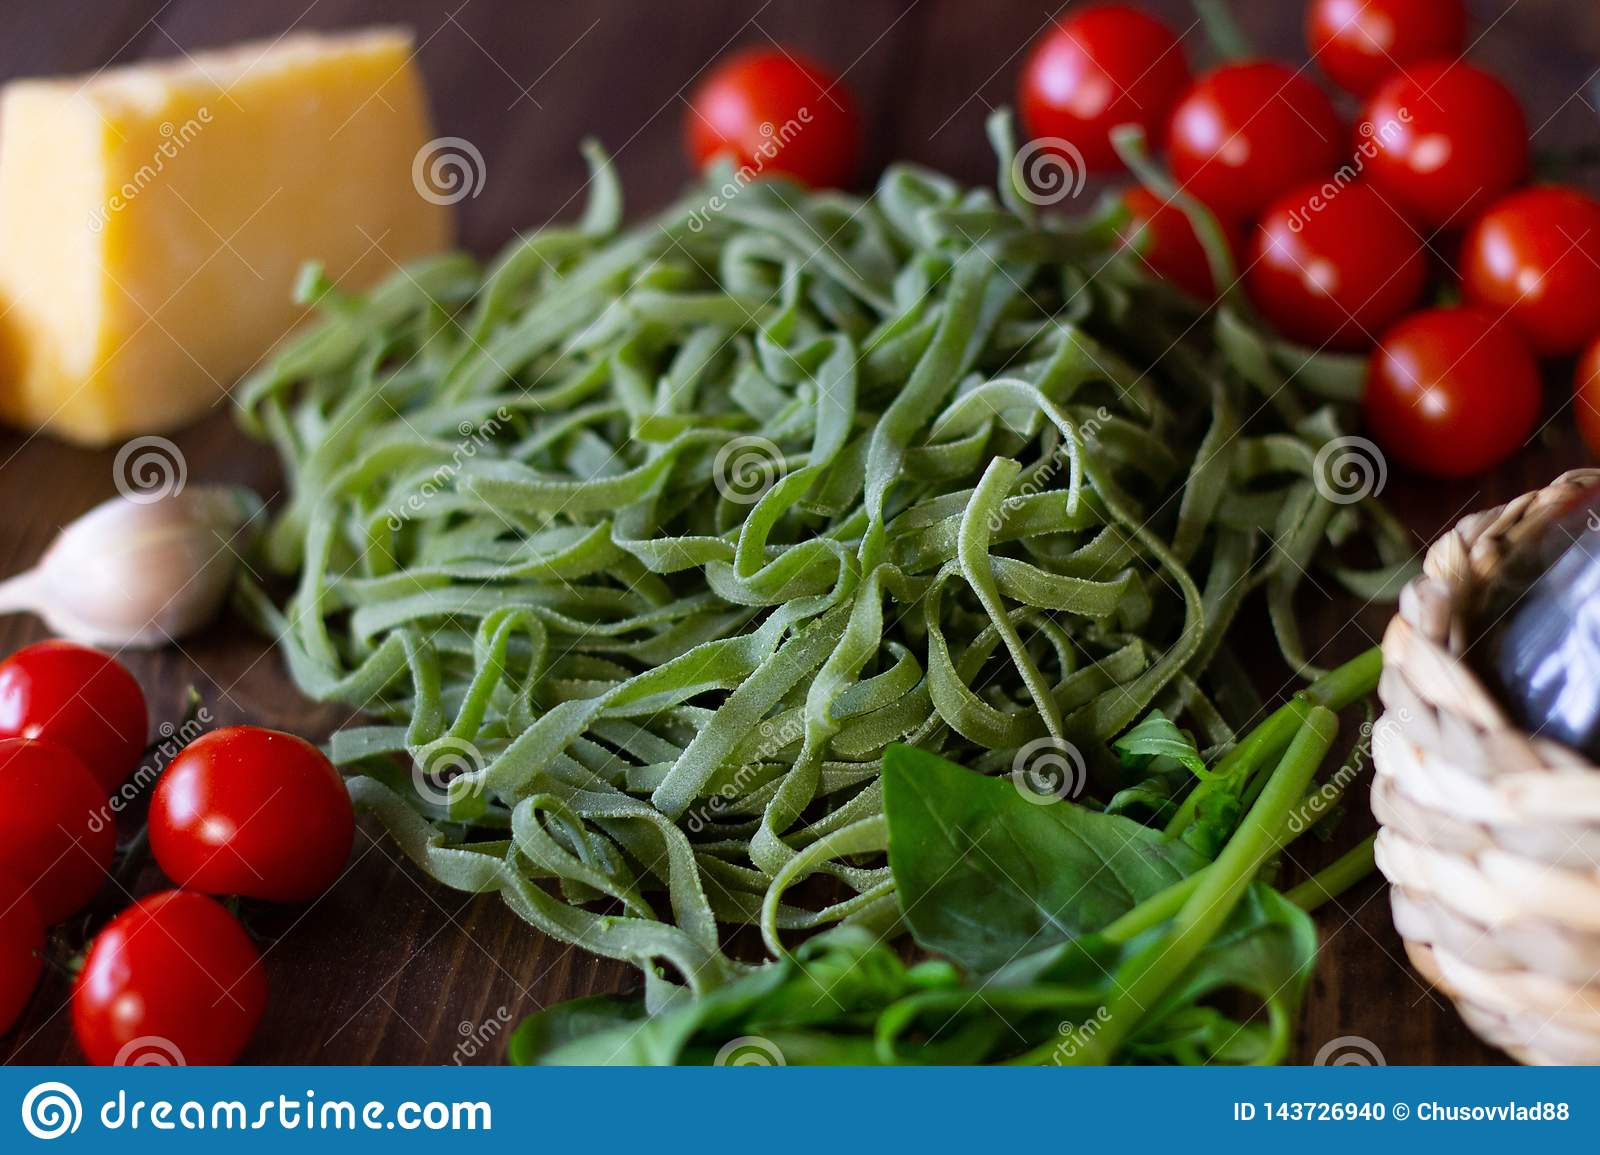 Ingredients for Italian green pasta. Wooden background